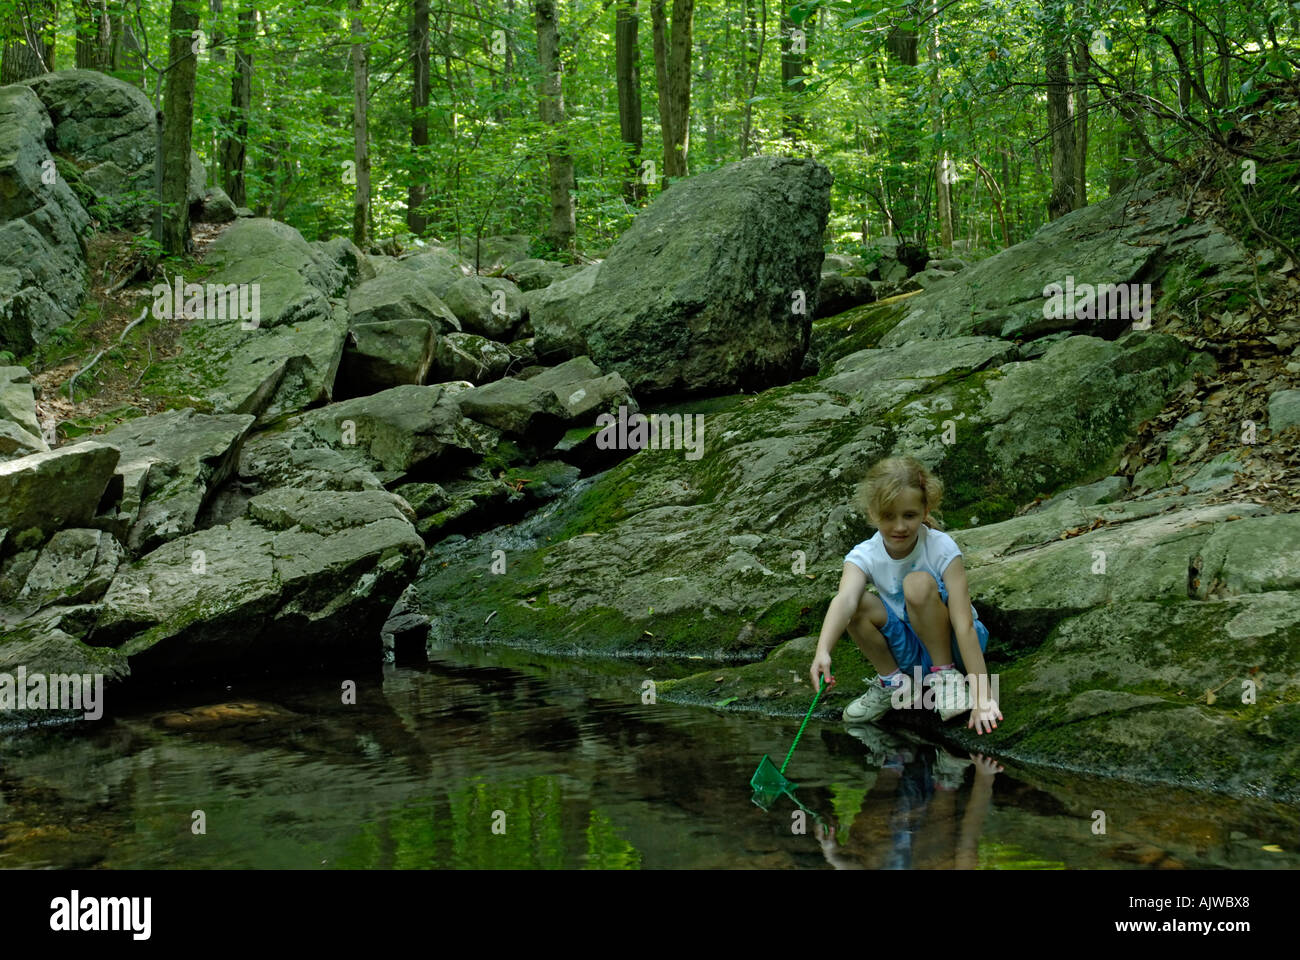 Young girl with net looking to catch frogs or fish in a stream in the woods - Stock Image